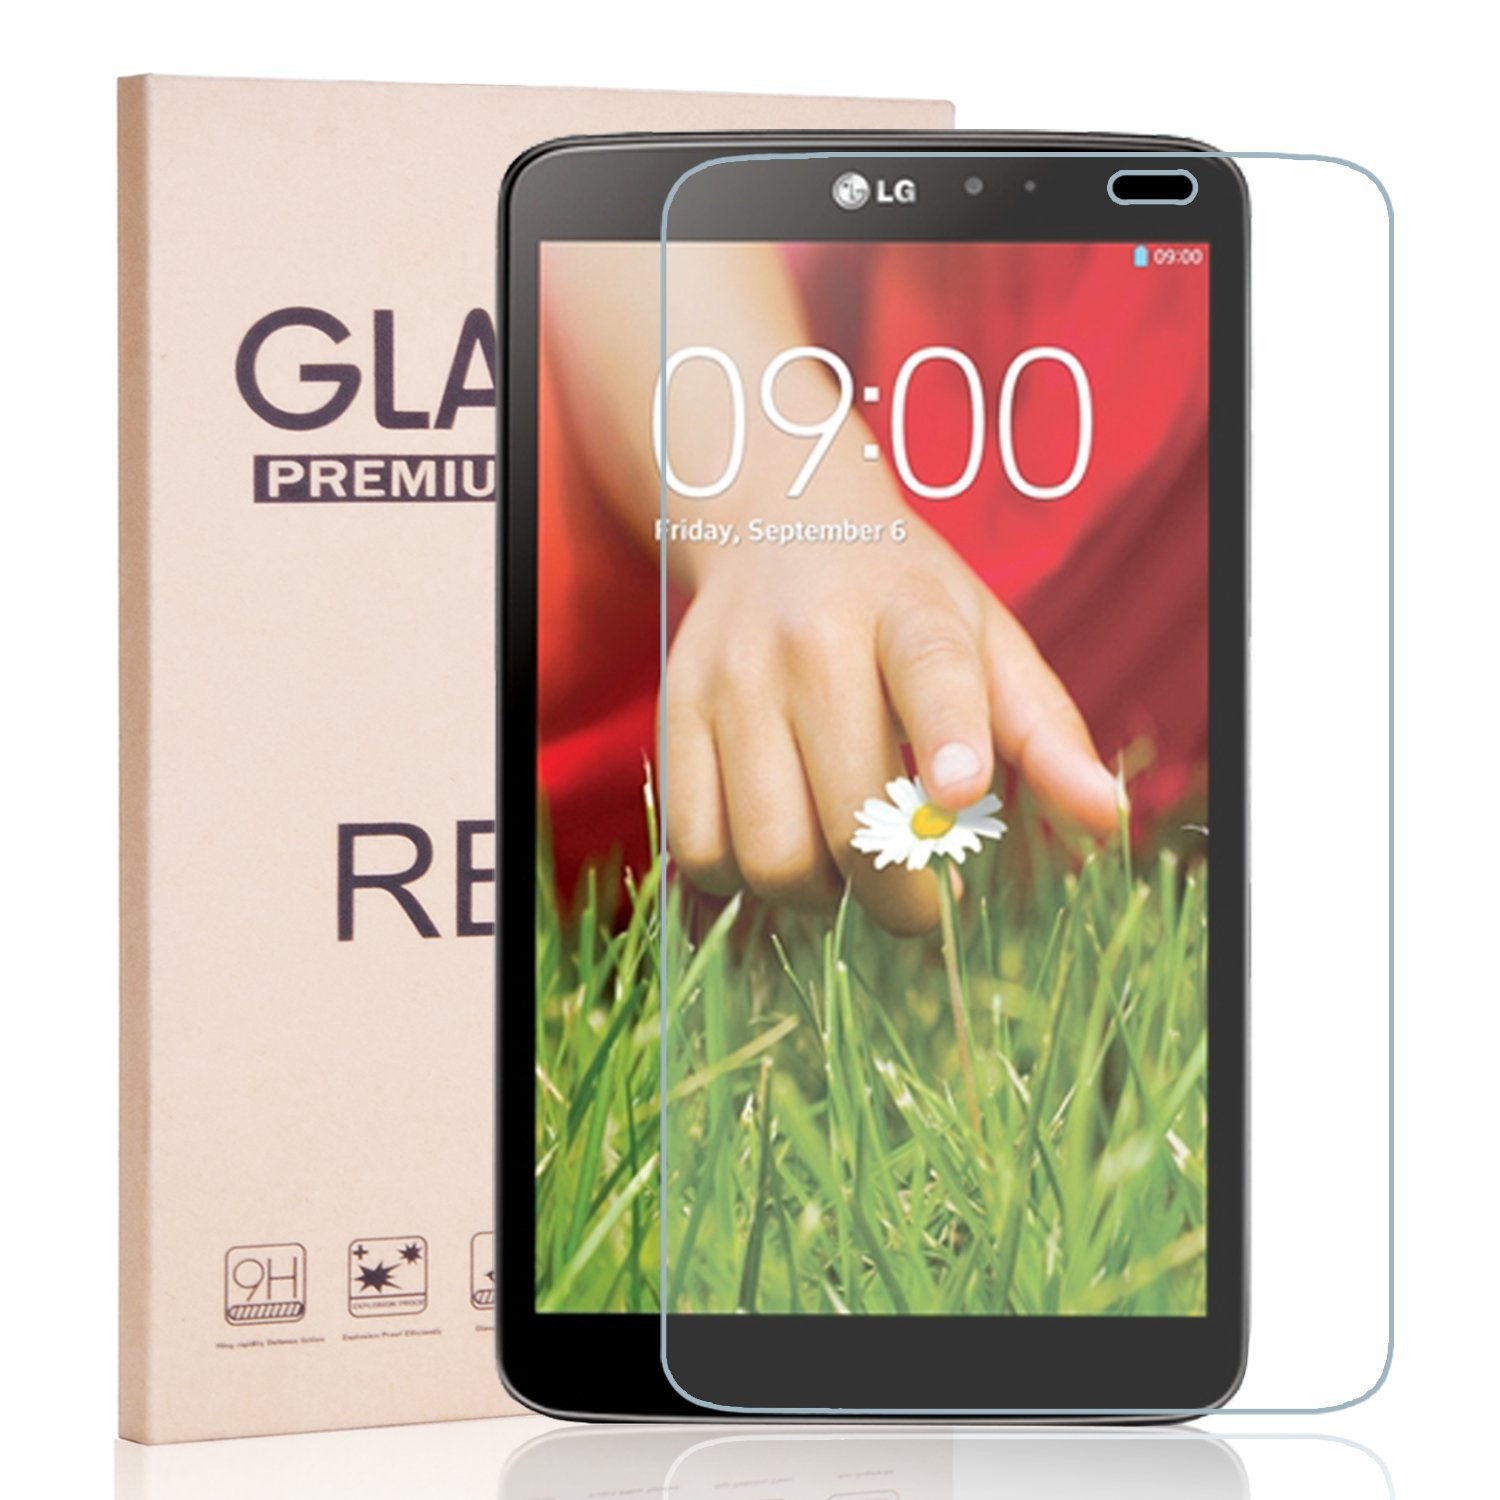 LG G Pad 8.3 Inch V500 Tempered Glass Screen Protector - RBEIK Premium 9H Hardness Tempered Glass Screen Protector for LG G Pad V500 8.3Inch Tablet with Anti-Scratch, Bubble Free,